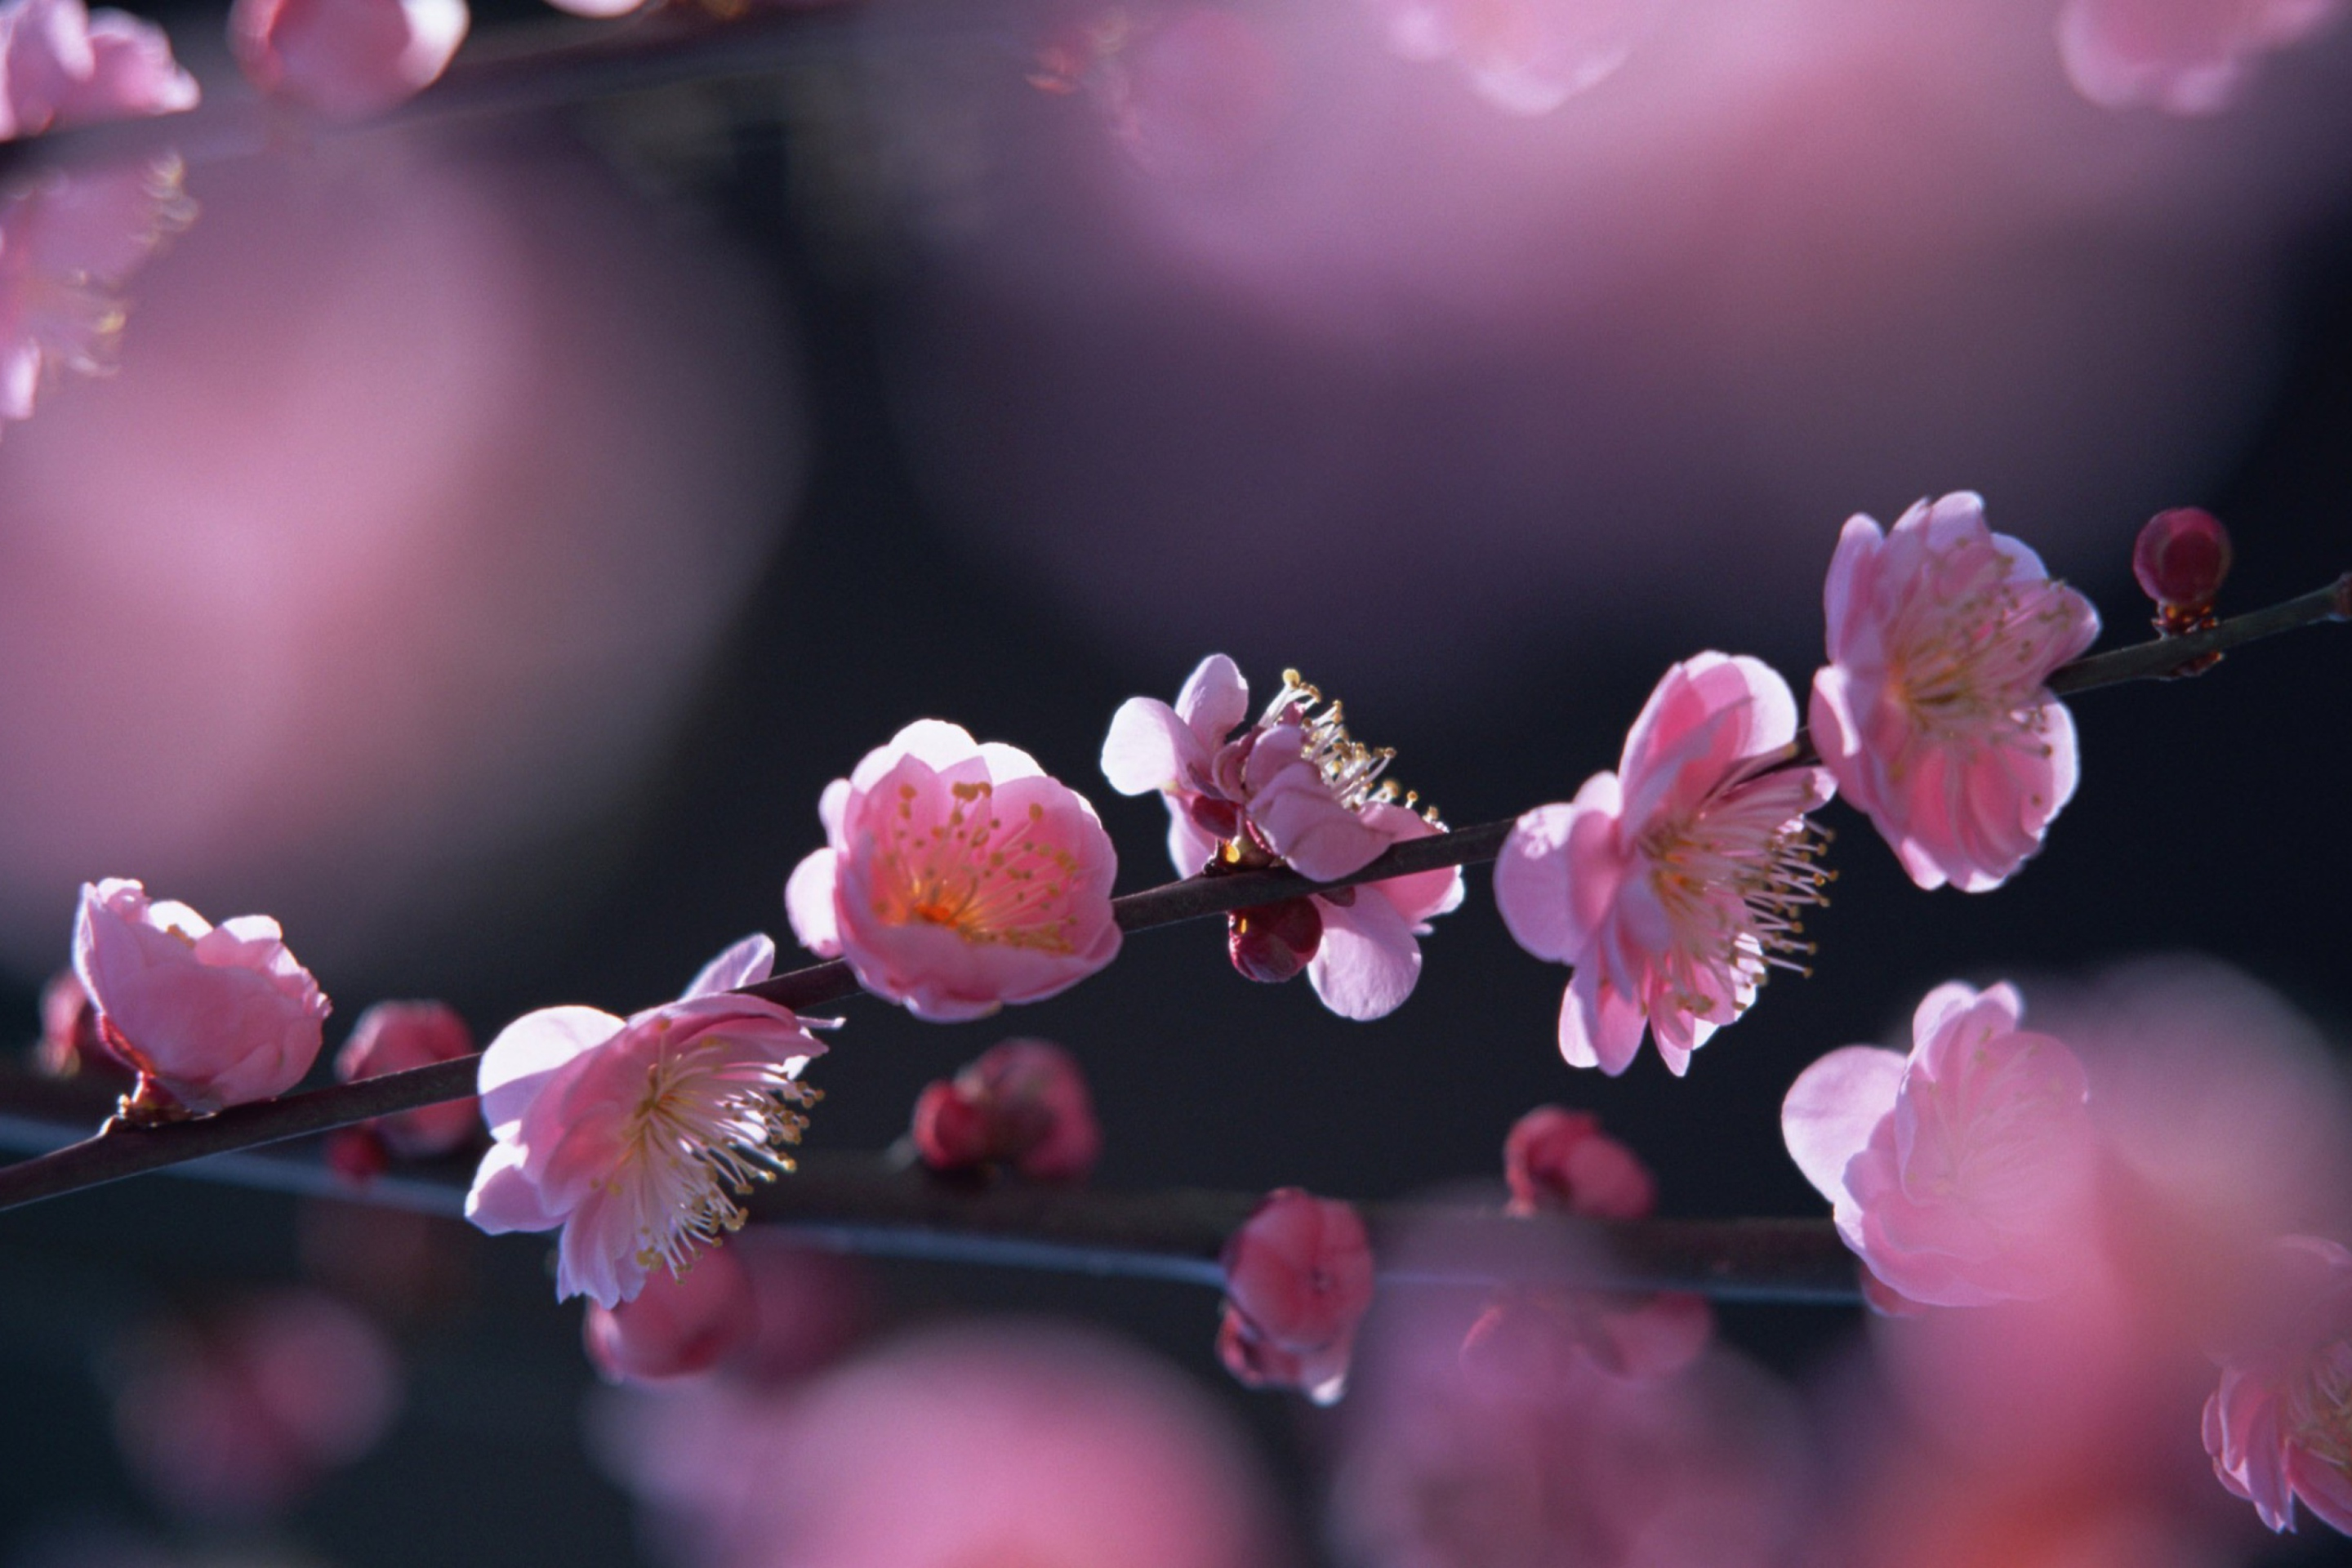 cherry blossom wallpaper - HD 2880×1920